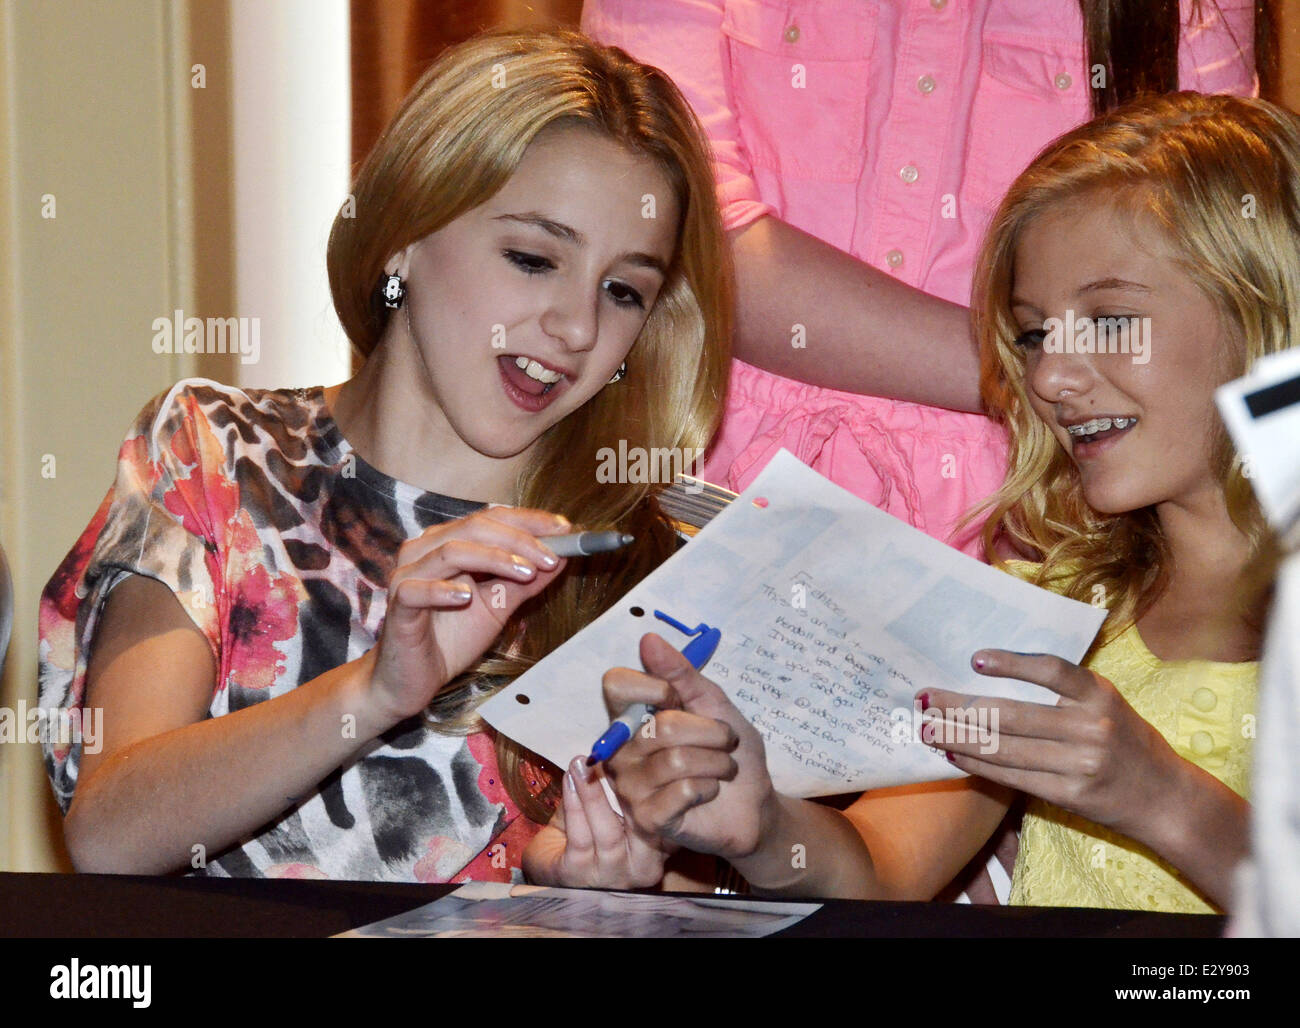 Cast members of the reality show dance moms attend a meet and cast members of the reality show dance moms attend a meet and greet at marriott downtown featuring chloe lukasiakpaige hyland where philadelphia m4hsunfo